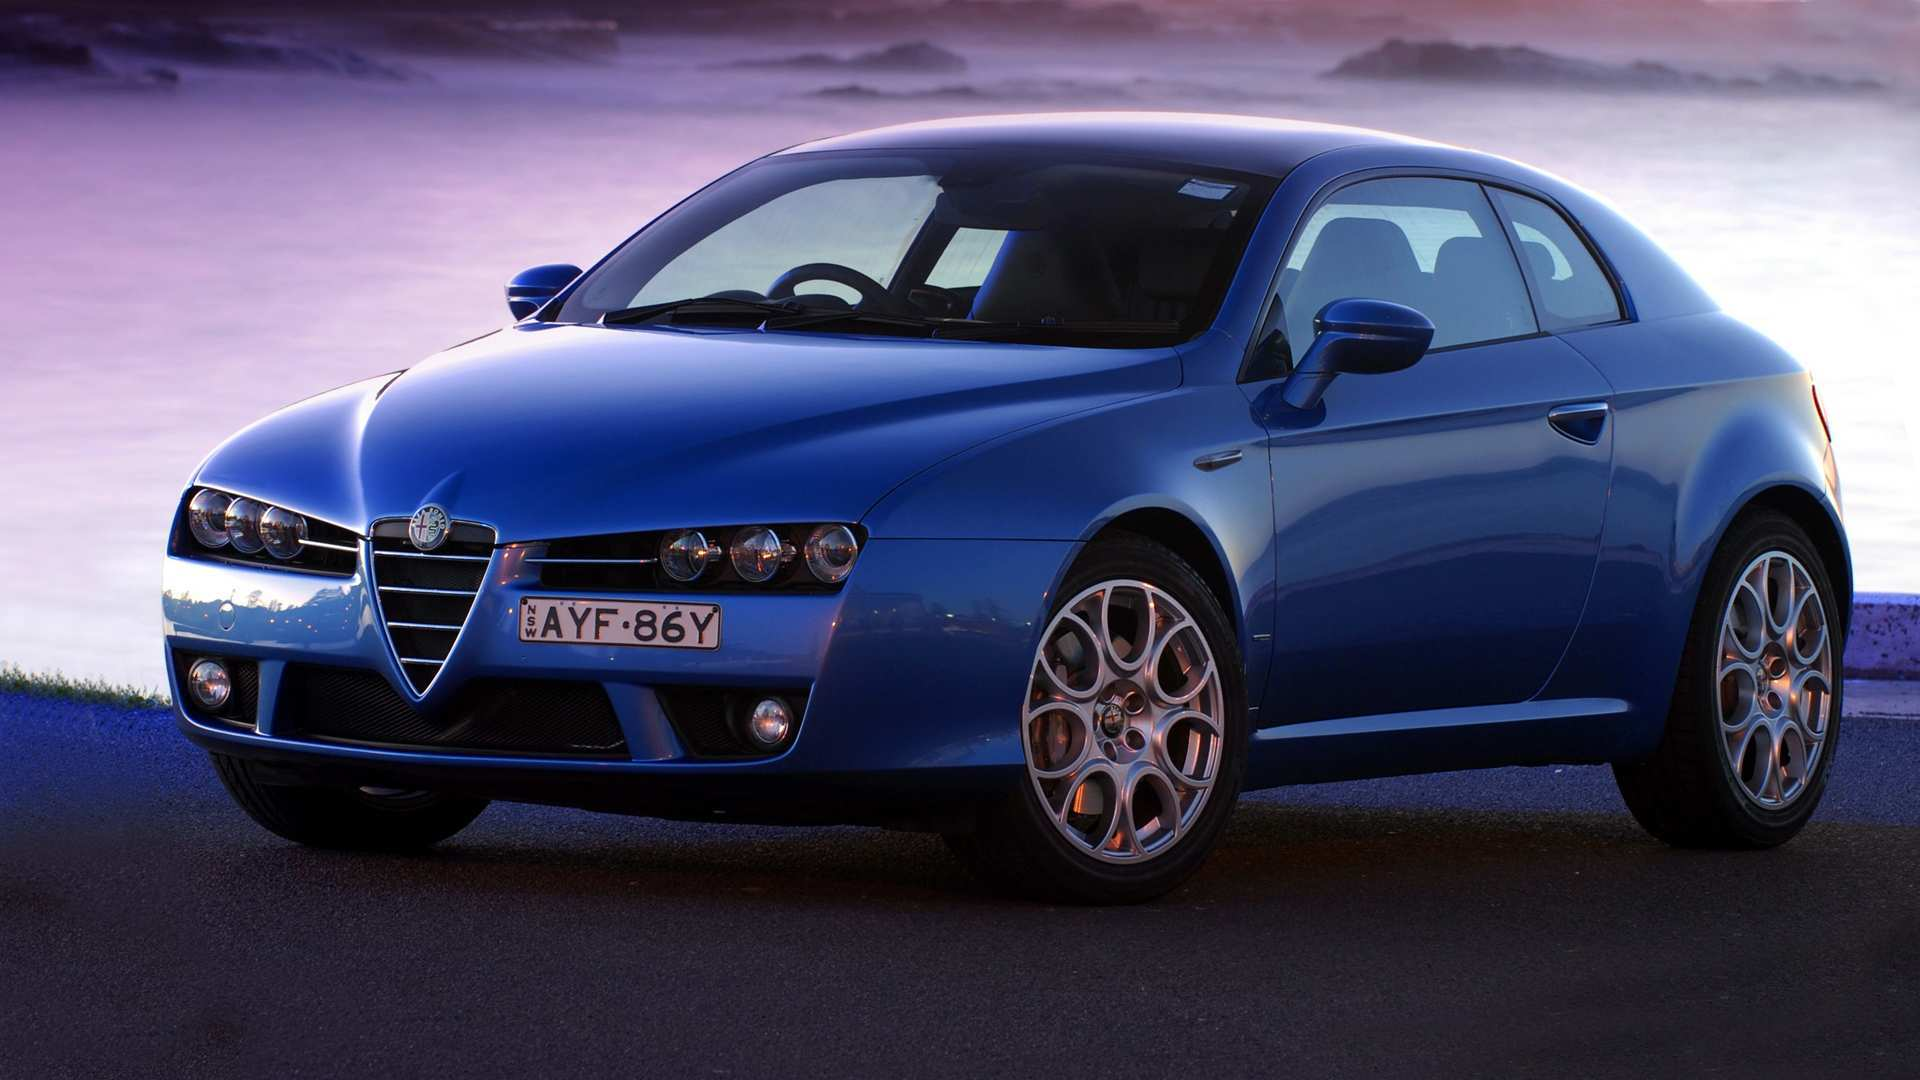 36 Best Alfa Brera 2019 Price And Review